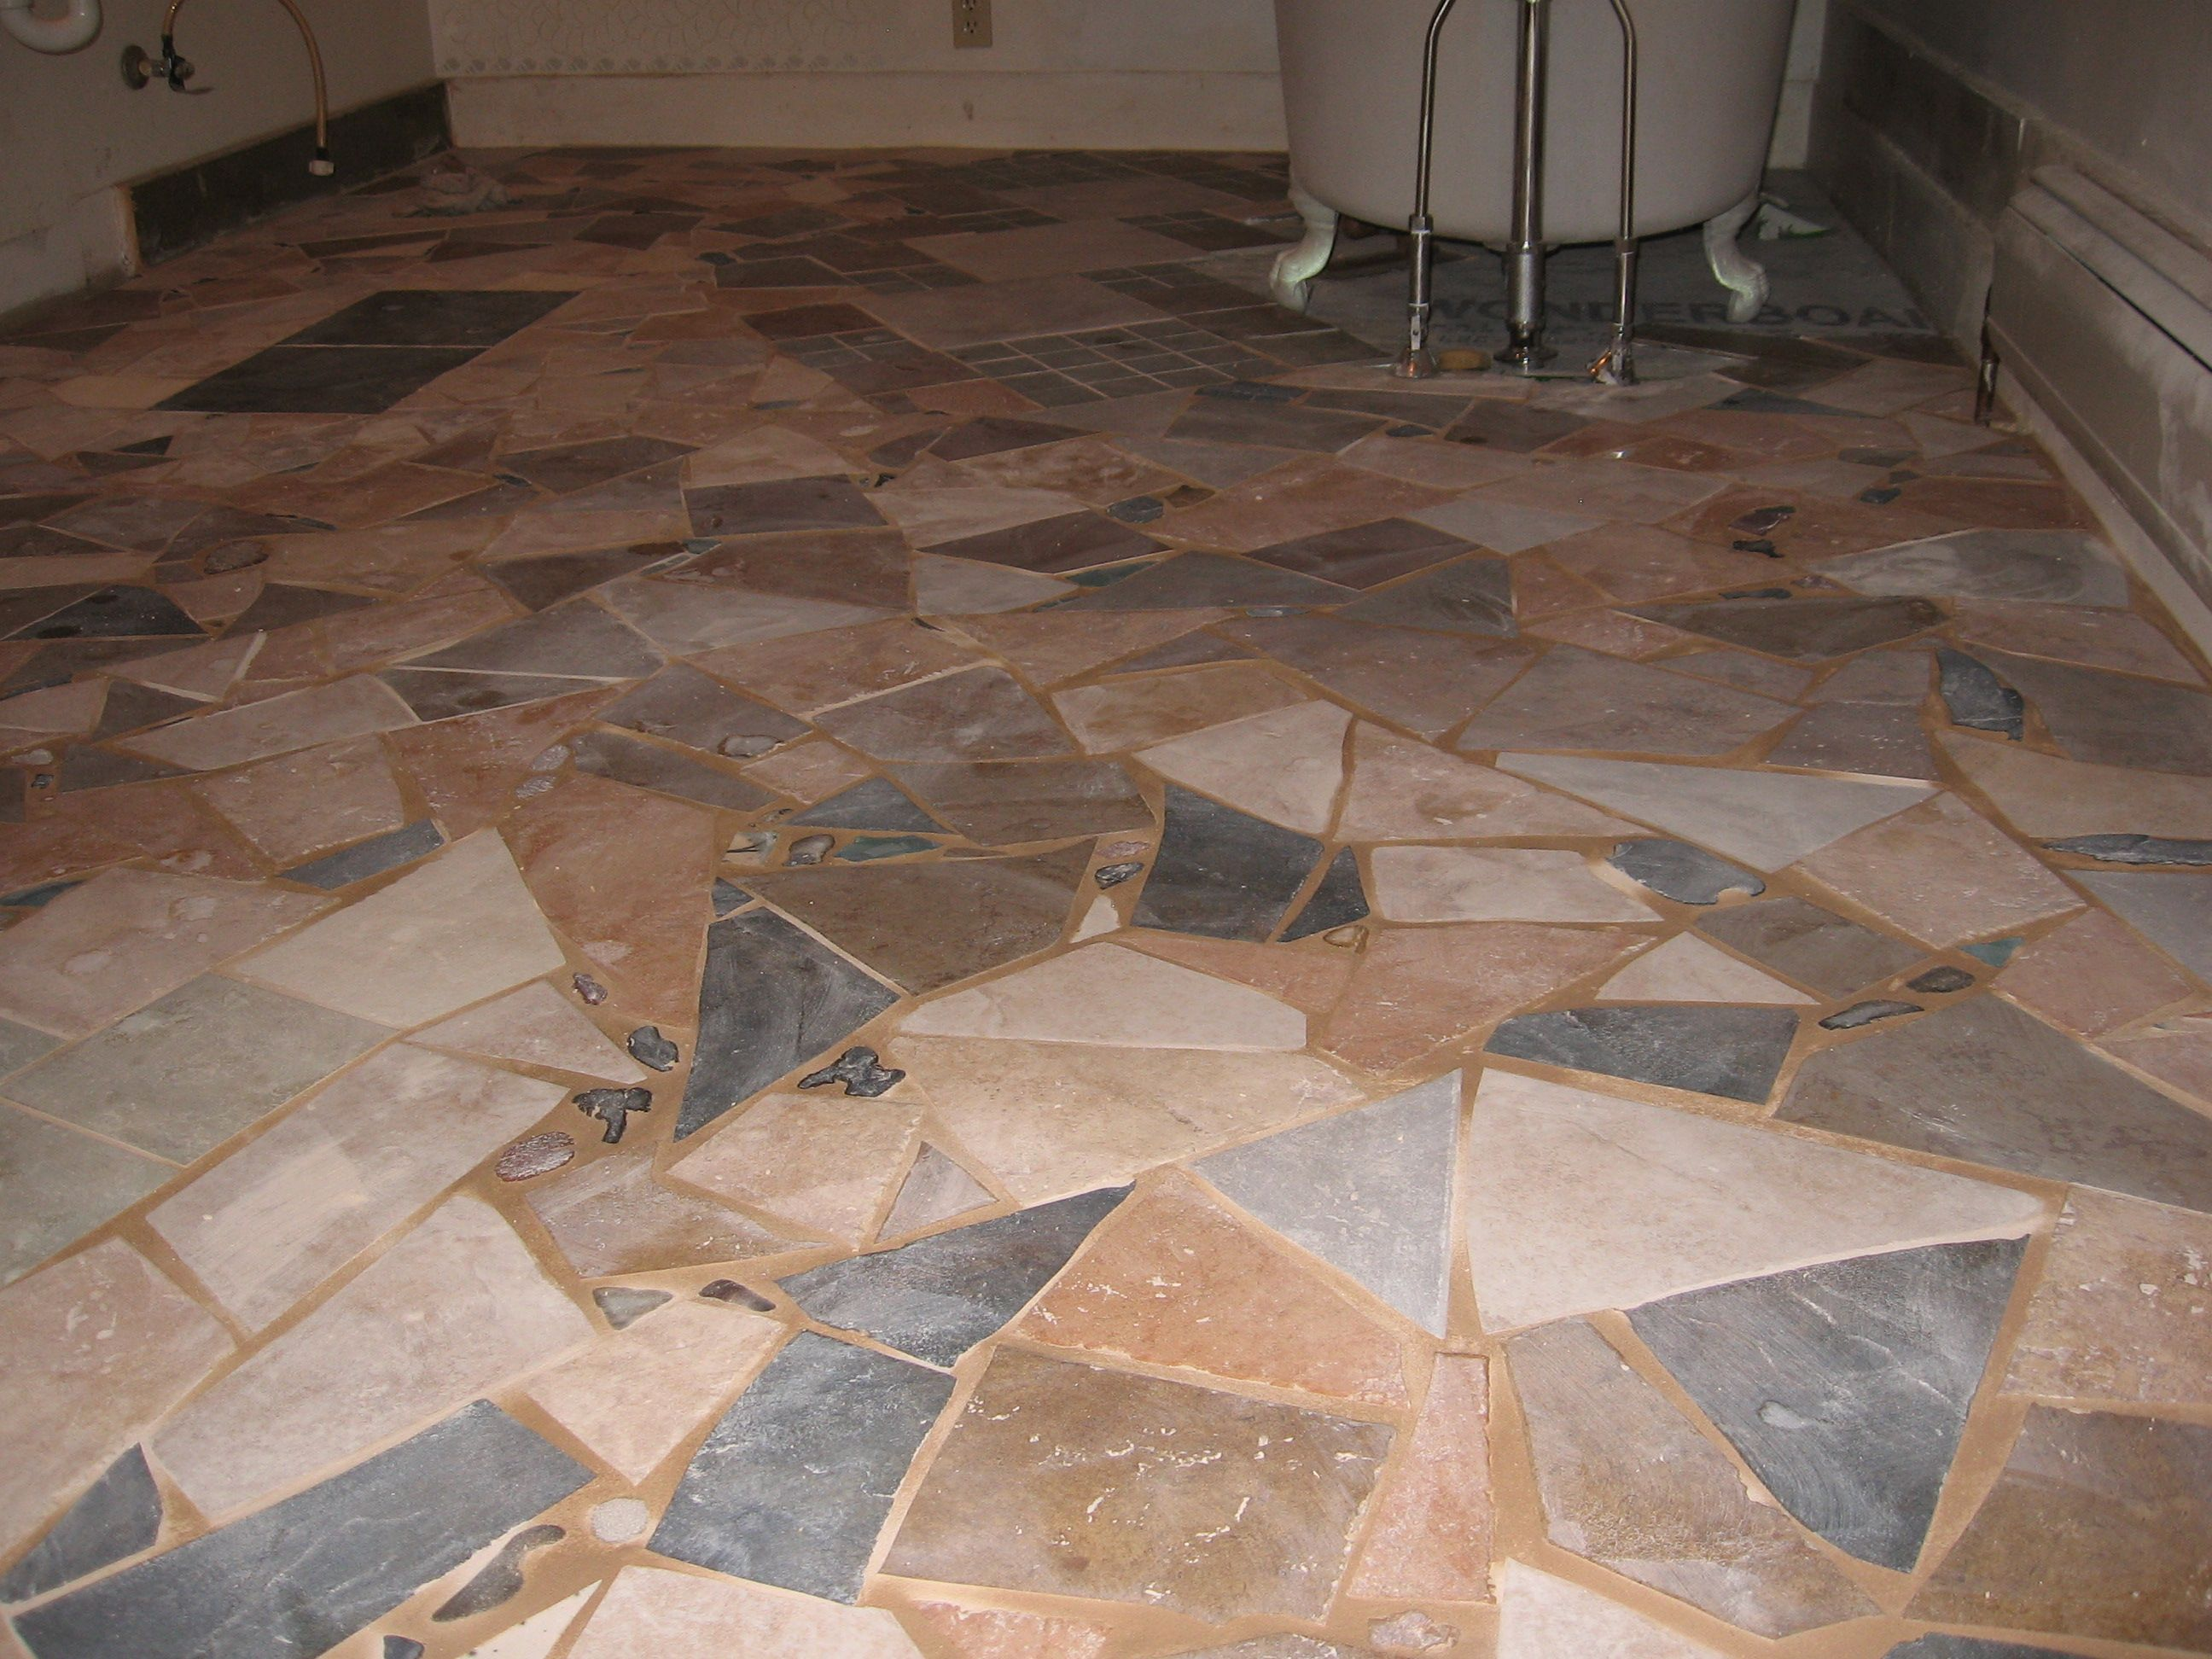 Rusticvermontweddings Upcycled Mismatched Tiles Make A Great Mosaic Floor We Re Did Our Bathroom Floor With Different Mosaic Flooring Flooring Carpet Tiles